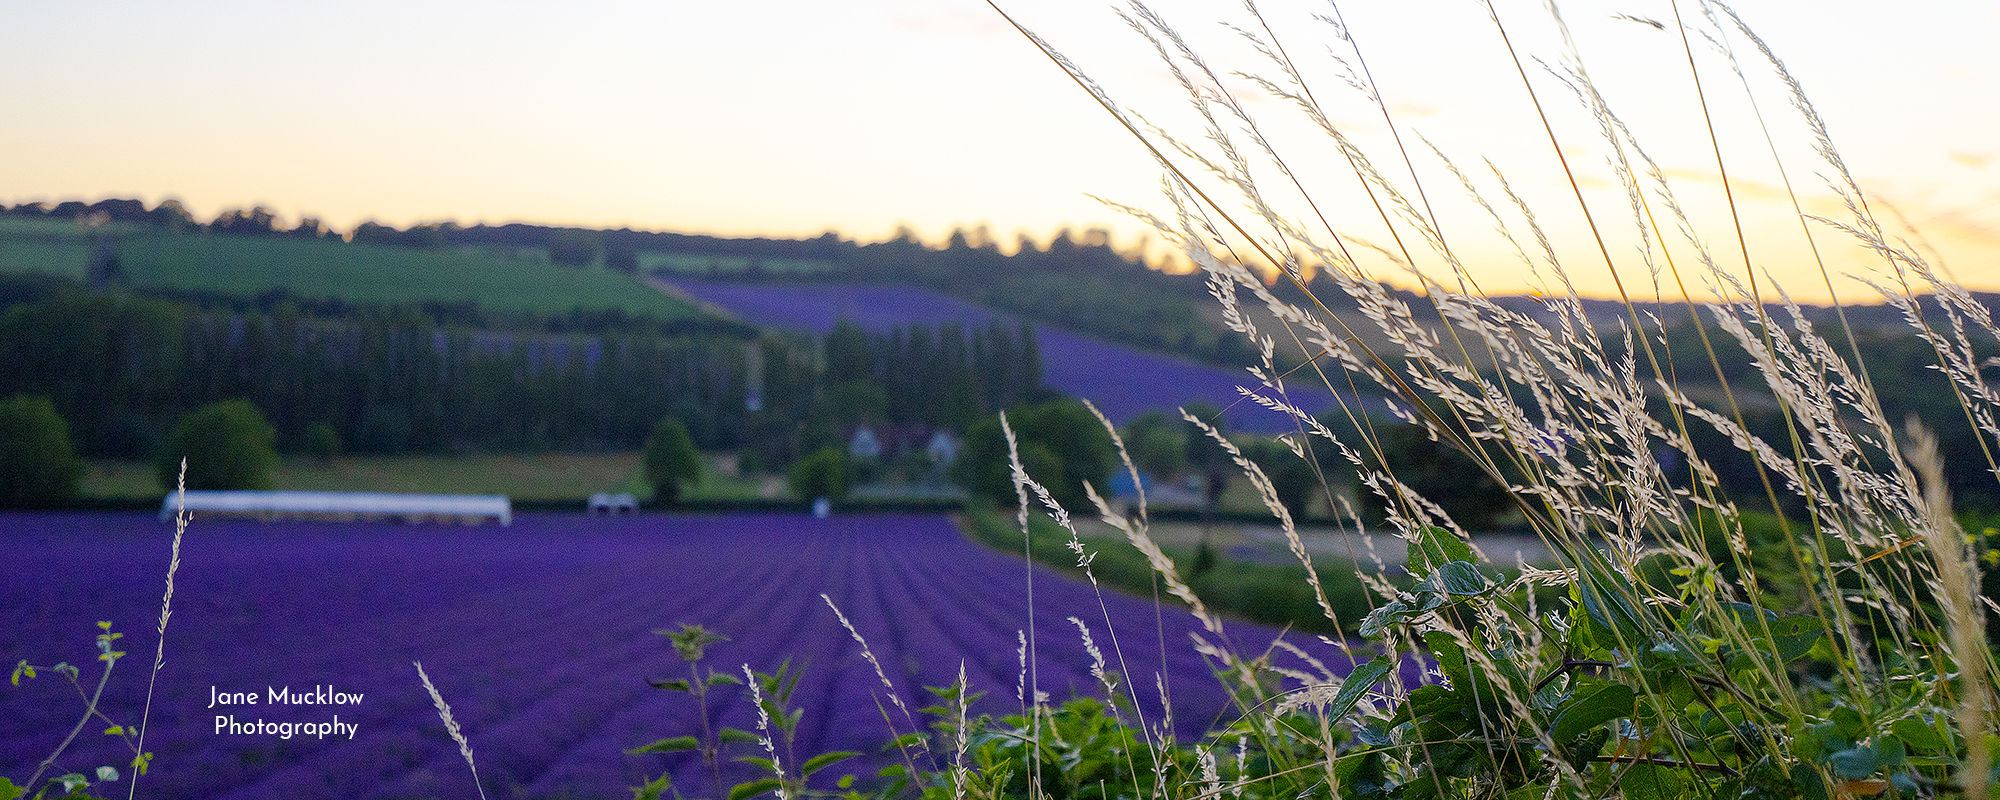 Photo by Jane Mucklow of sunset and grasses view across the lavender farm, Shoreham, Kent, available as a canvas for your wall.